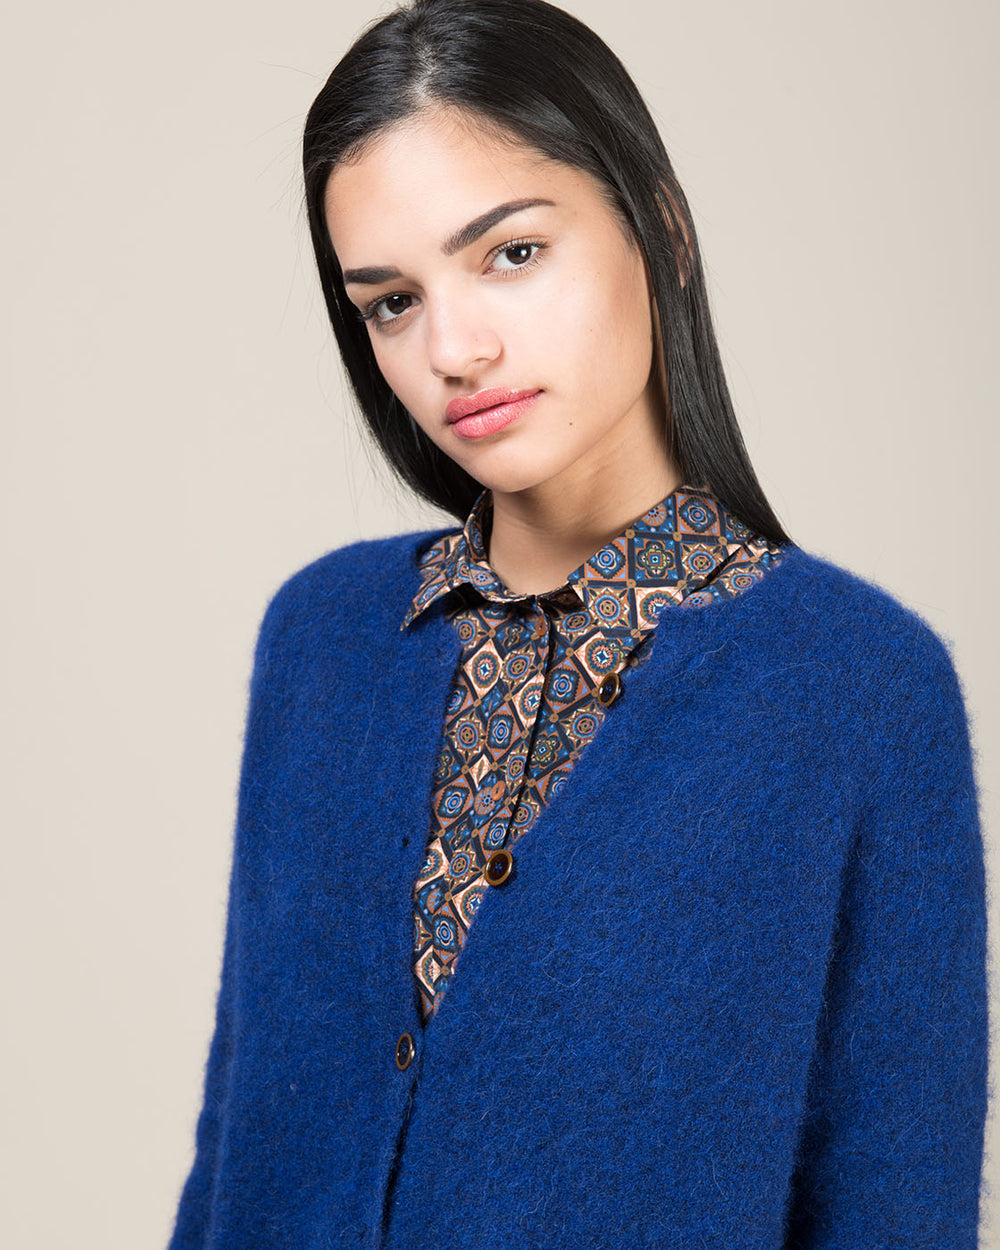 Electric Blue Faux Felt Effect Cardigan